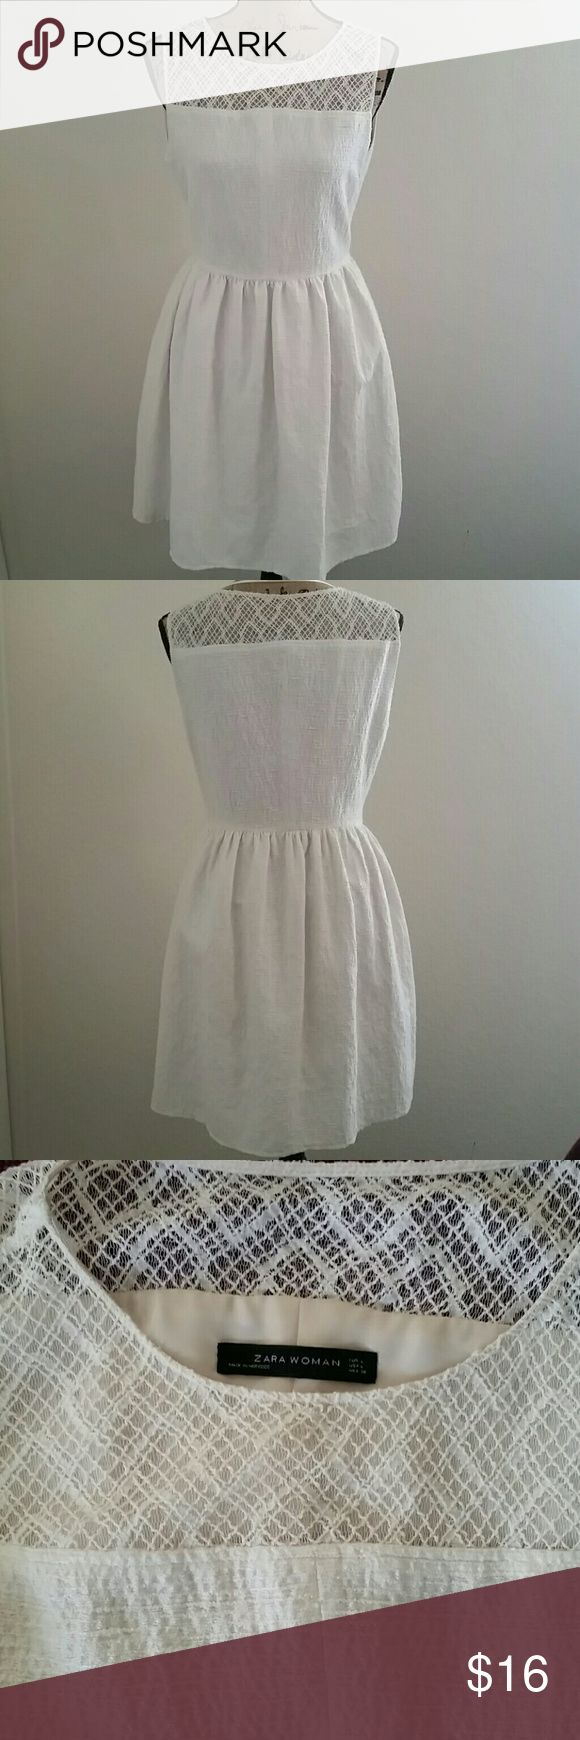 Cream Zara Cocktail Dress Super cute cream cocktail dress. Featuring sleeveless crochet lace top and side zip opening. Material: 42% cotton 33% polyester 25% acrylic. Perfect dress for spring. In good condition. Dry cleaned and ready to wear. Zara Dresses